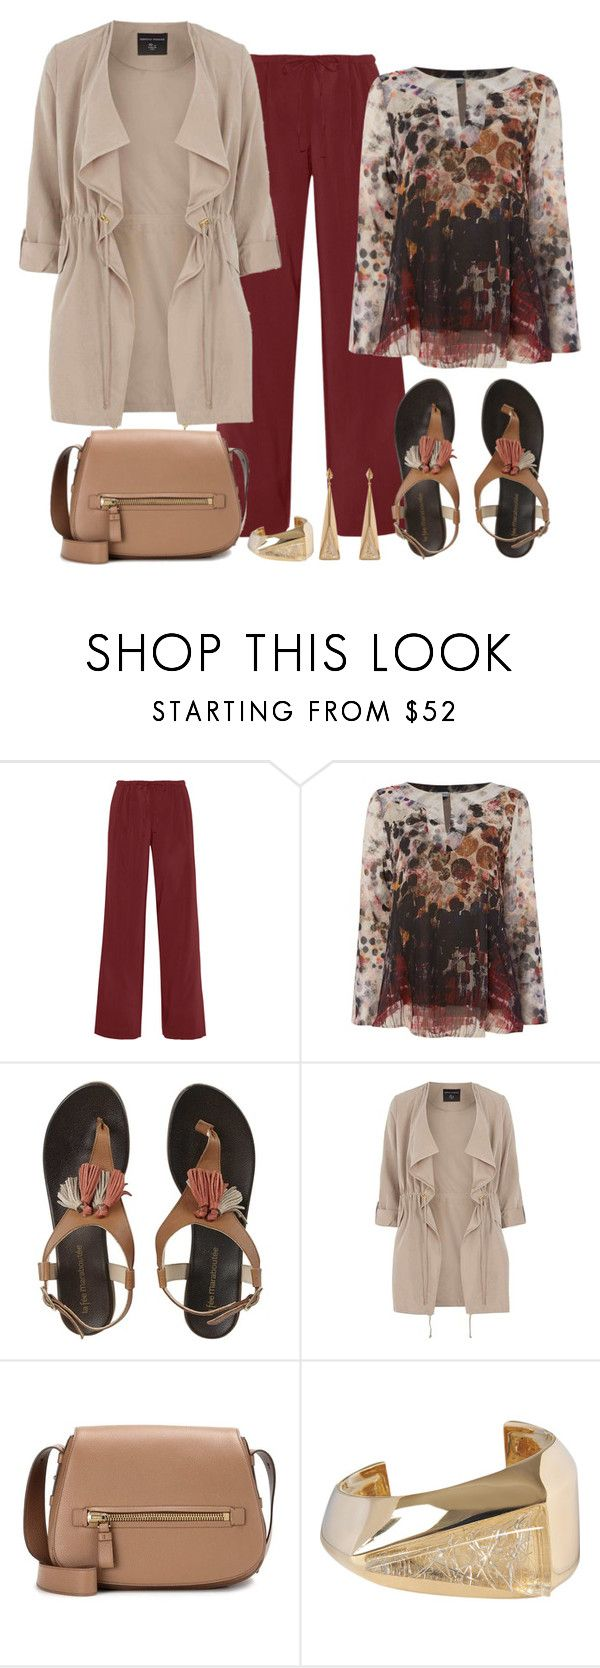 """""""La Fee Maraboutee Tunic Look"""" by romaboots-1 ❤ liked on Polyvore featuring Theory, La Fée Maraboutée, Dorothy Perkins, Tom Ford and Chloé"""